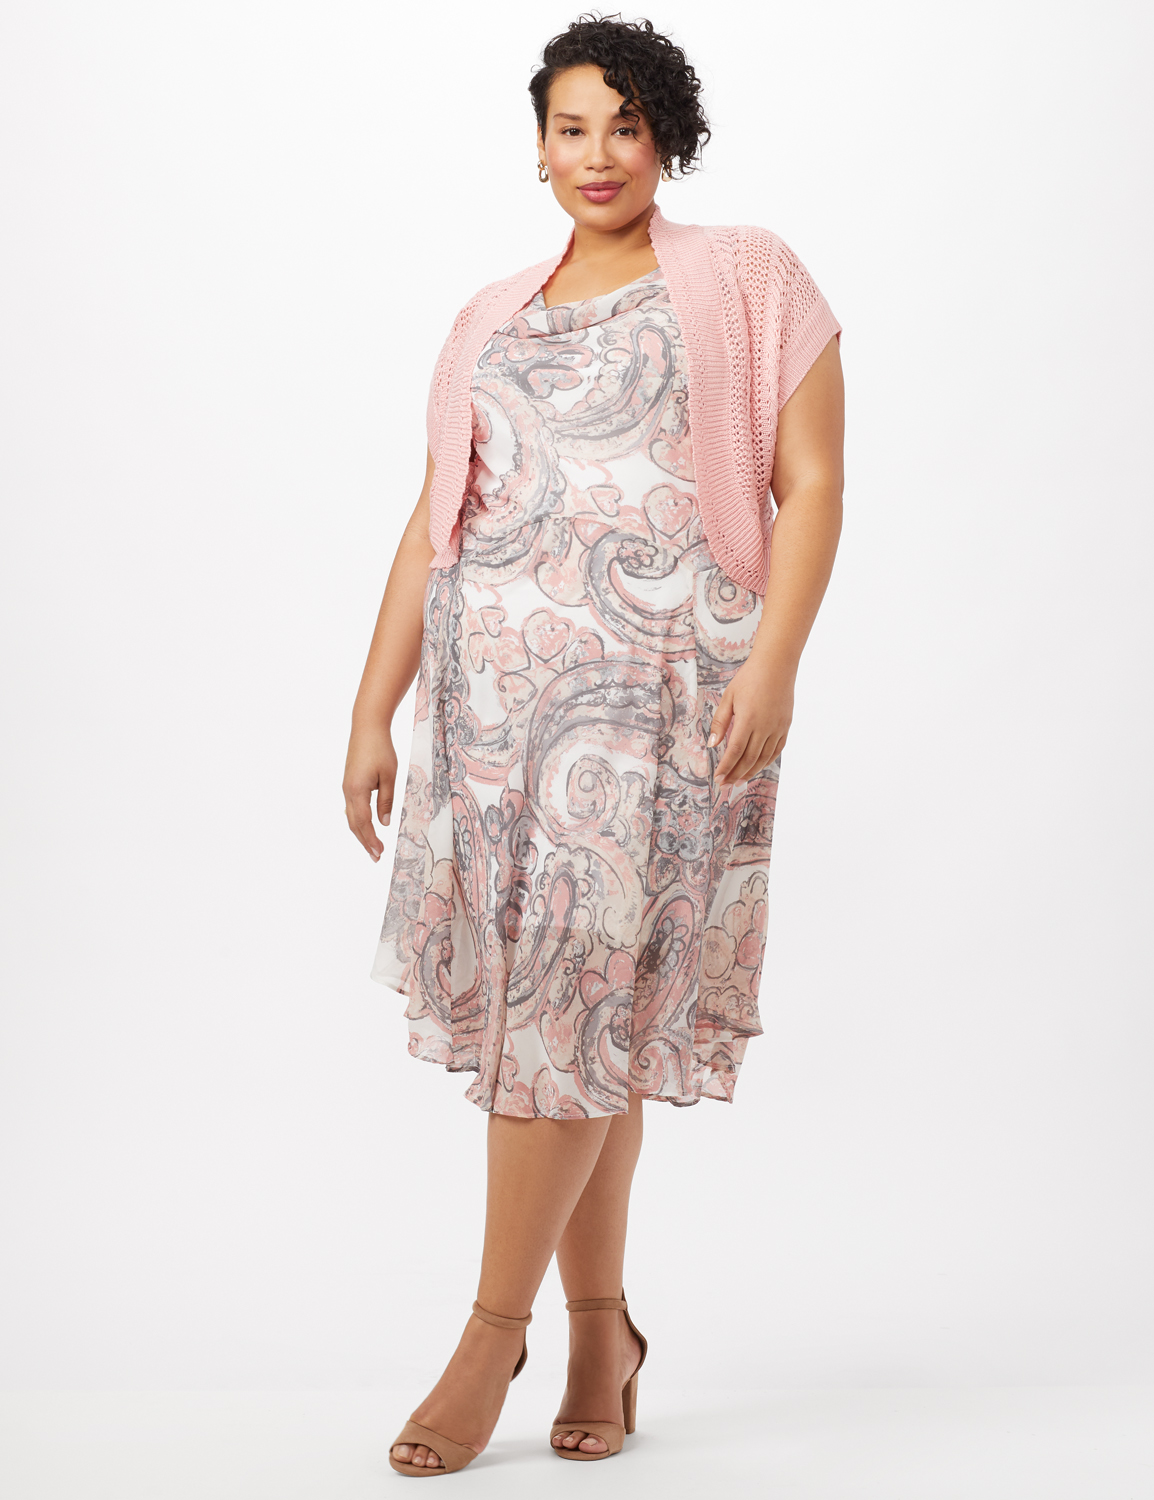 Crochet Sweater Drape Neck Chiffon Dress -Grey /Pink - Front